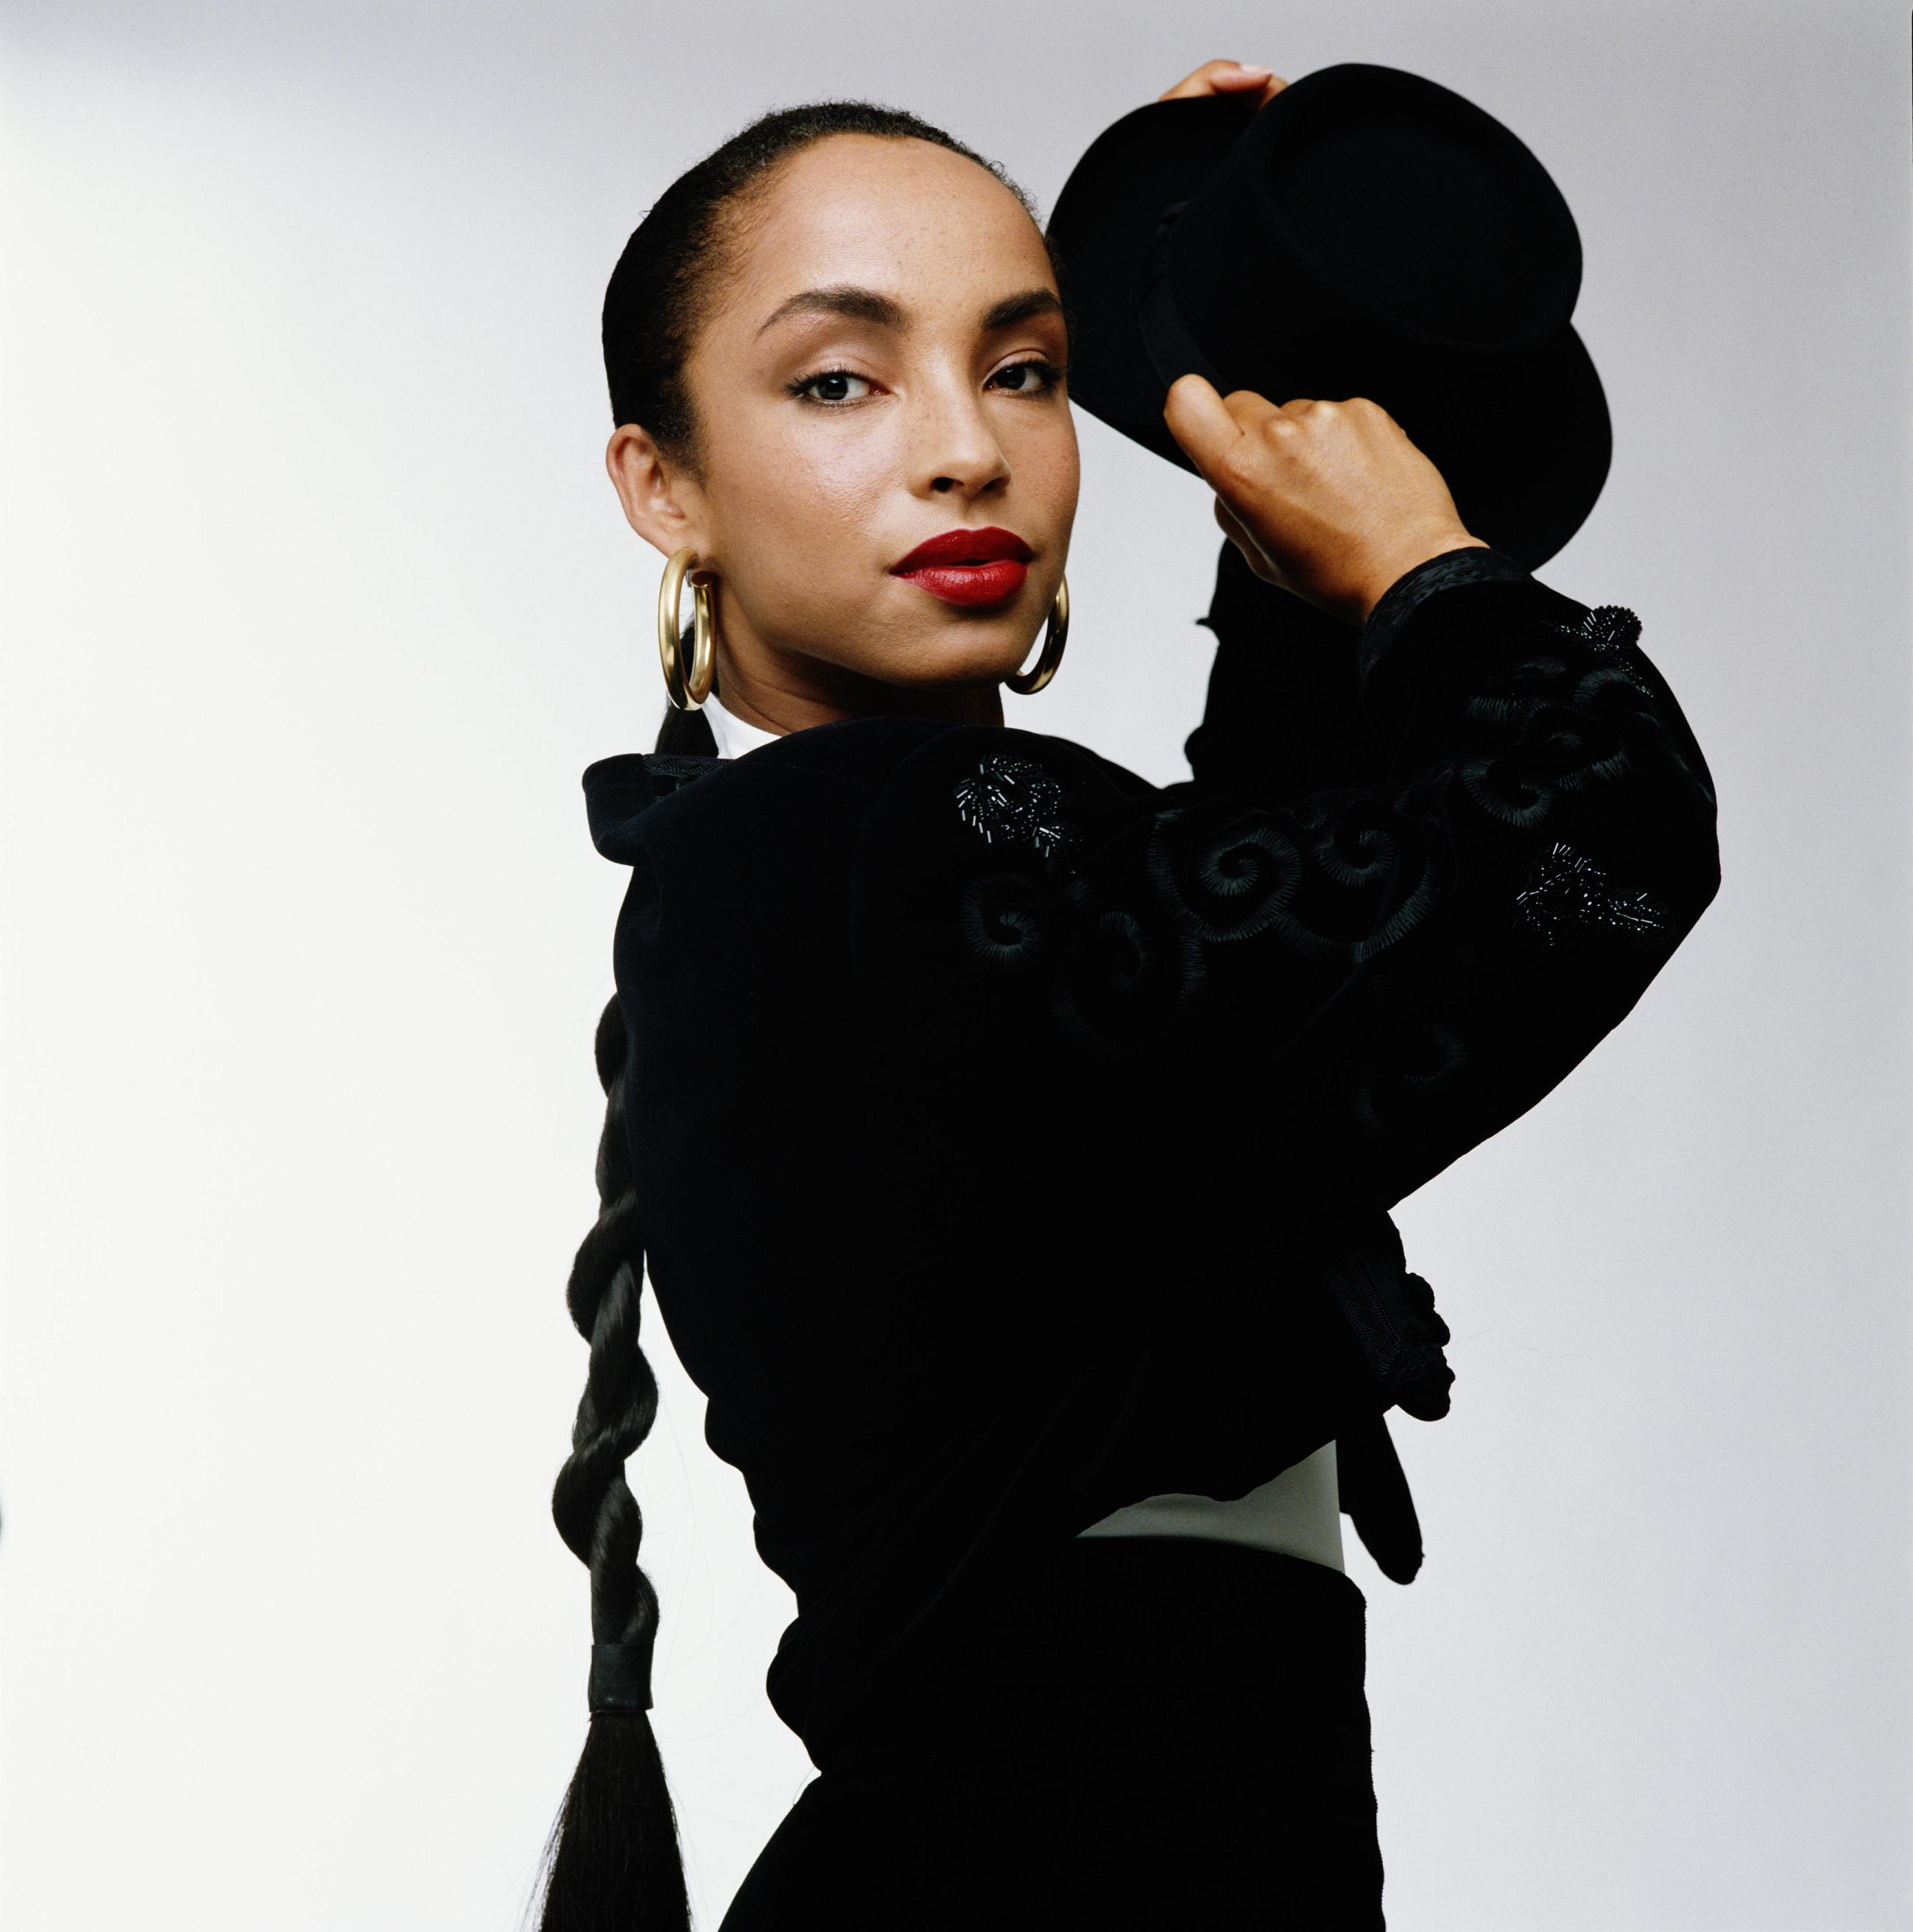 Sade Wallpaper http://zimg.dyndns.org/wallpaper-sad/